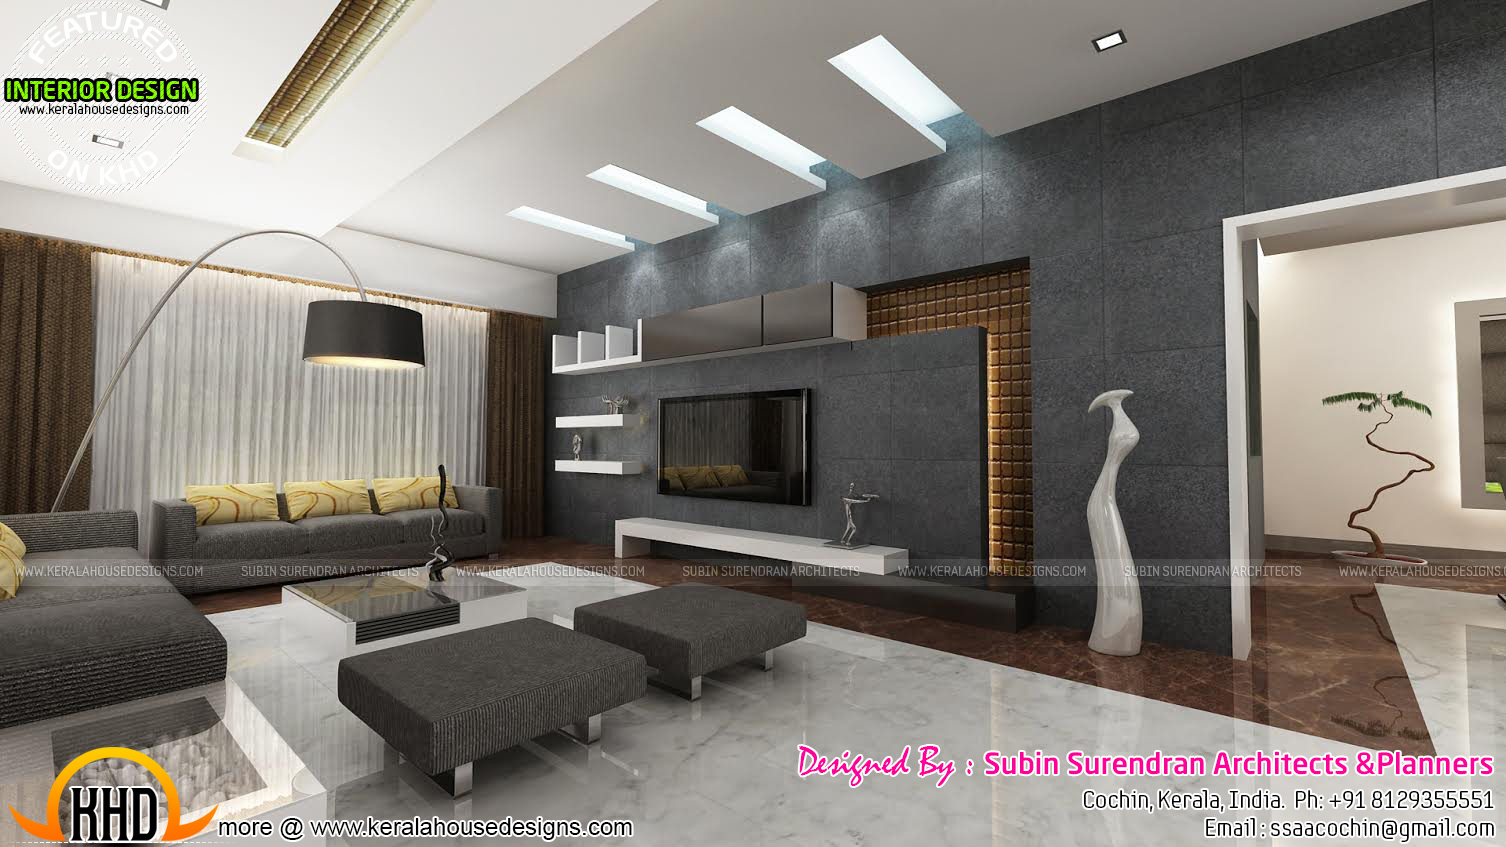 living rooms modern kitchen interiors in kerala kerala home design and floor plans. Black Bedroom Furniture Sets. Home Design Ideas